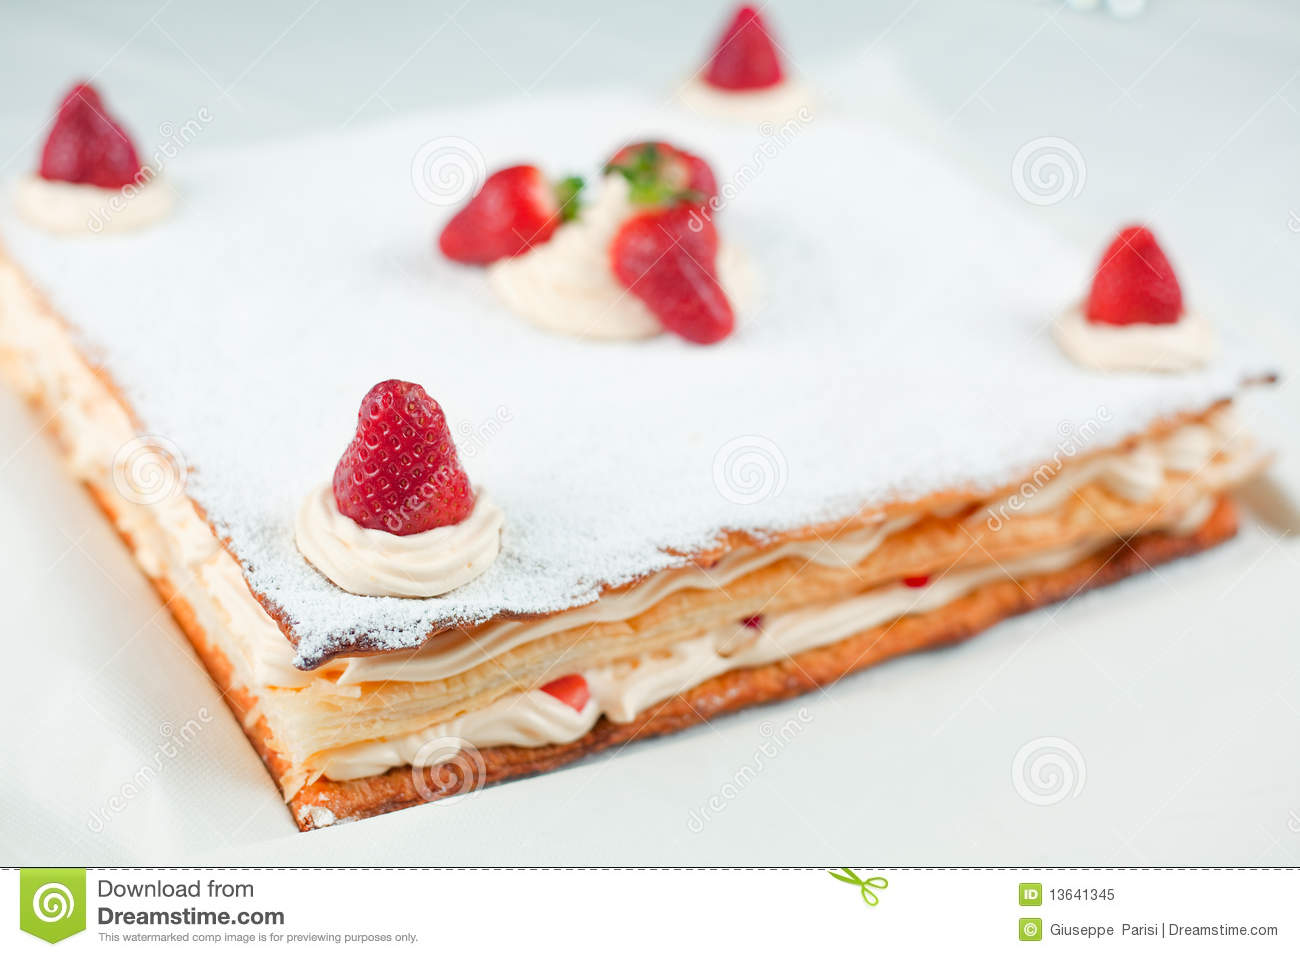 Strawberry Millefeuille Royalty Free Stock Photo - Image: 13641345